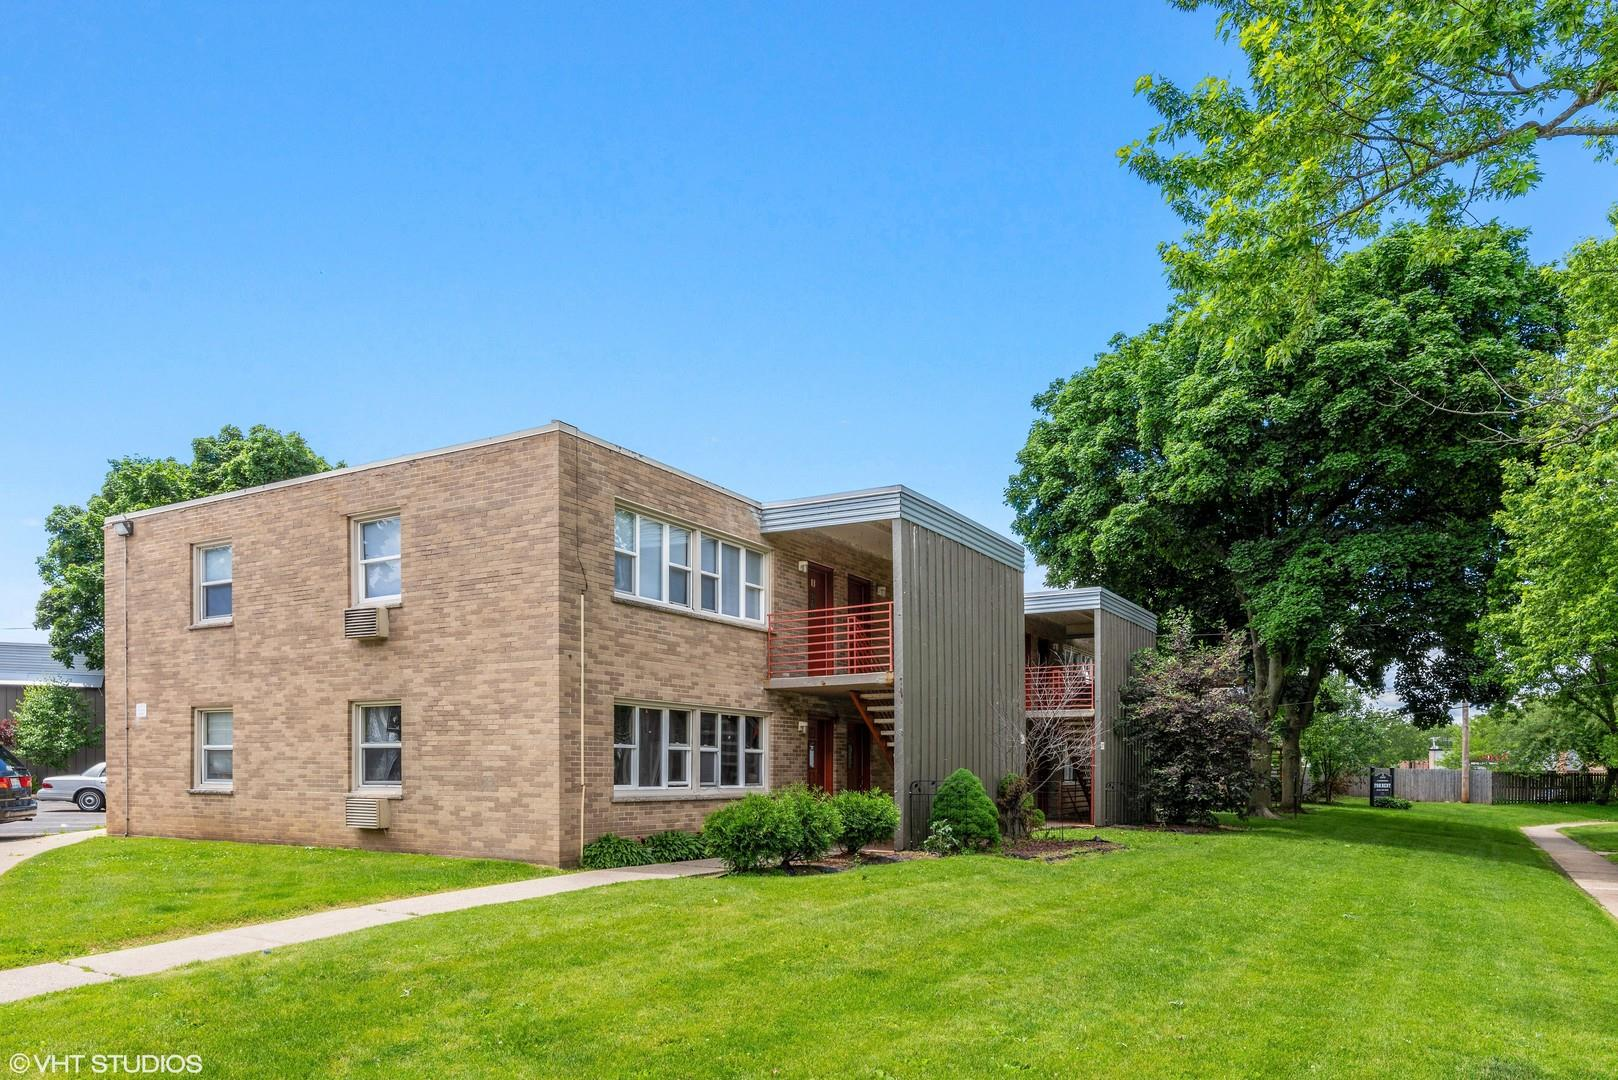 243 UTEG Street #2, Crystal Lake, IL 60014 - #: 10678454